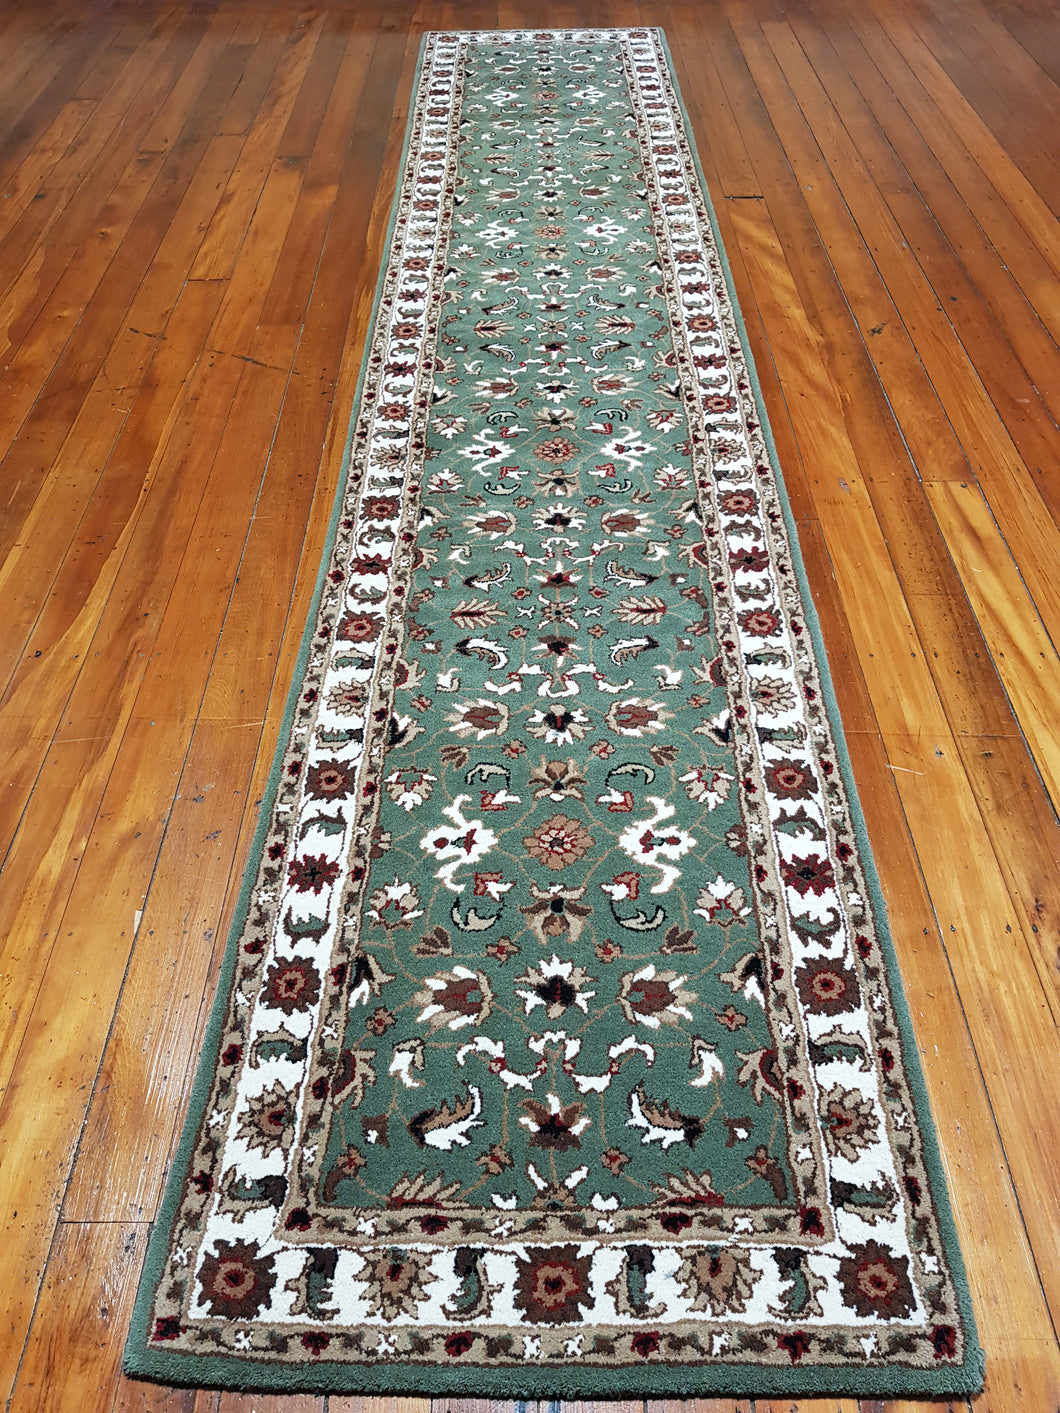 Hand tufted wool Rug SQHT 53 size 400 x 80 cm India